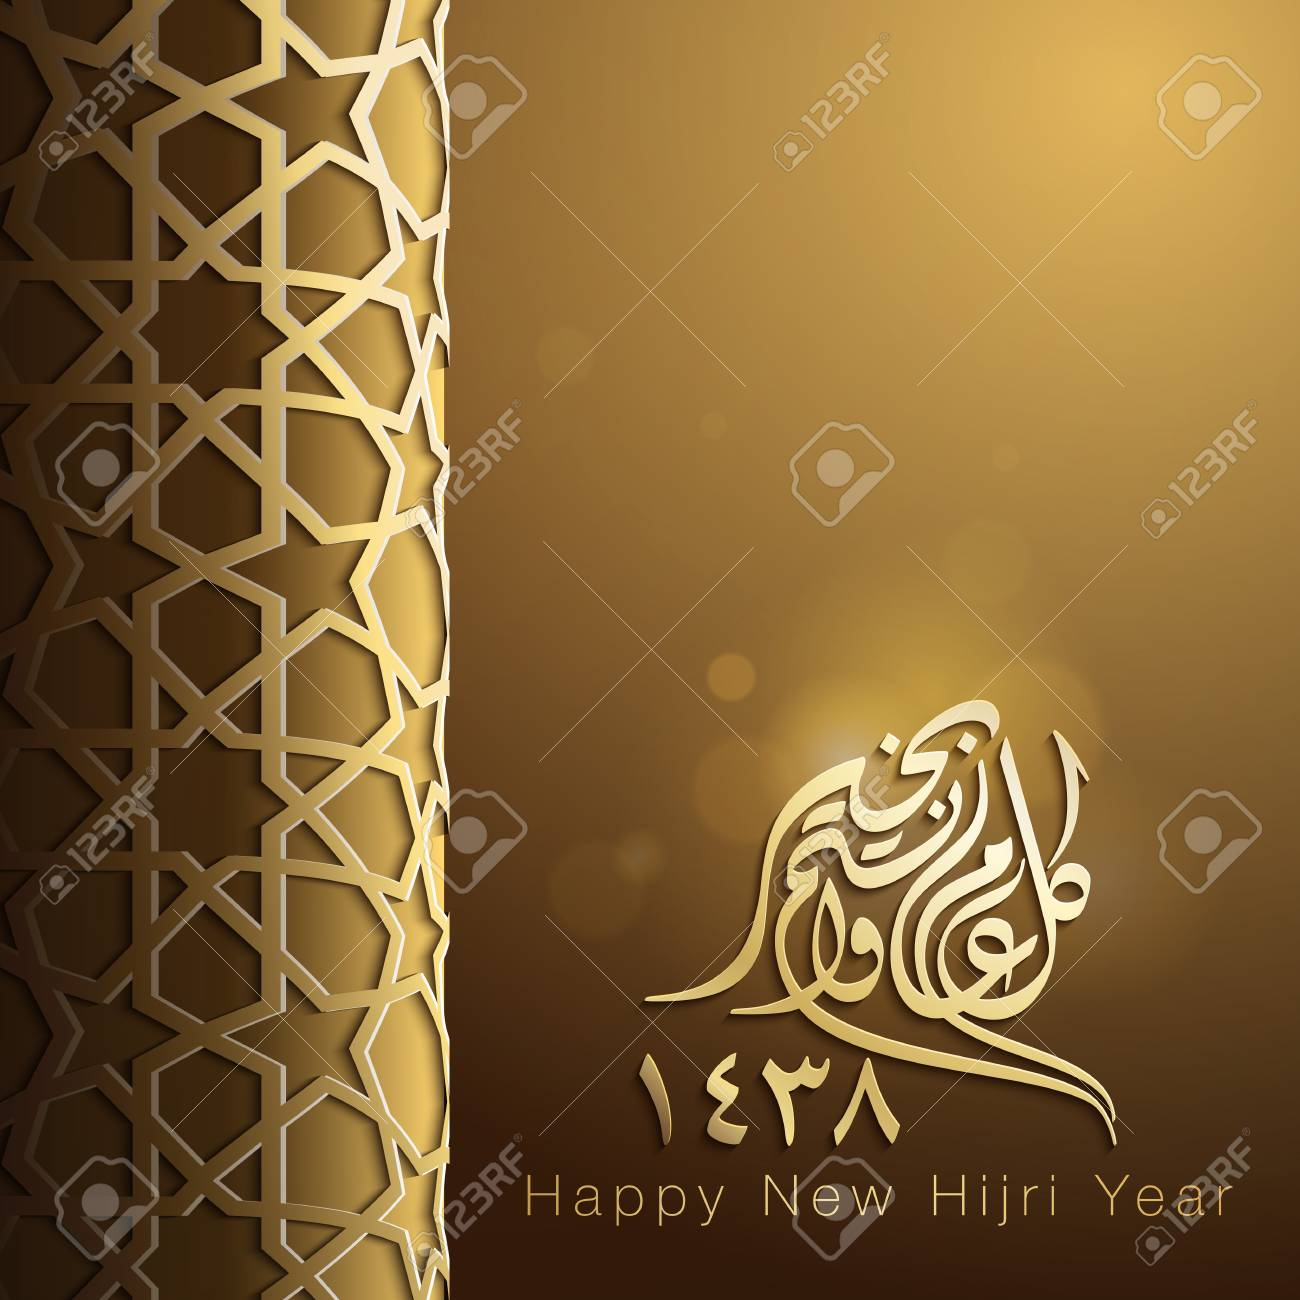 Beautiful islamic greeting card template for happy new hijri beautiful islamic greeting card template for happy new hijri year 1438 stock vector 77746097 kristyandbryce Image collections